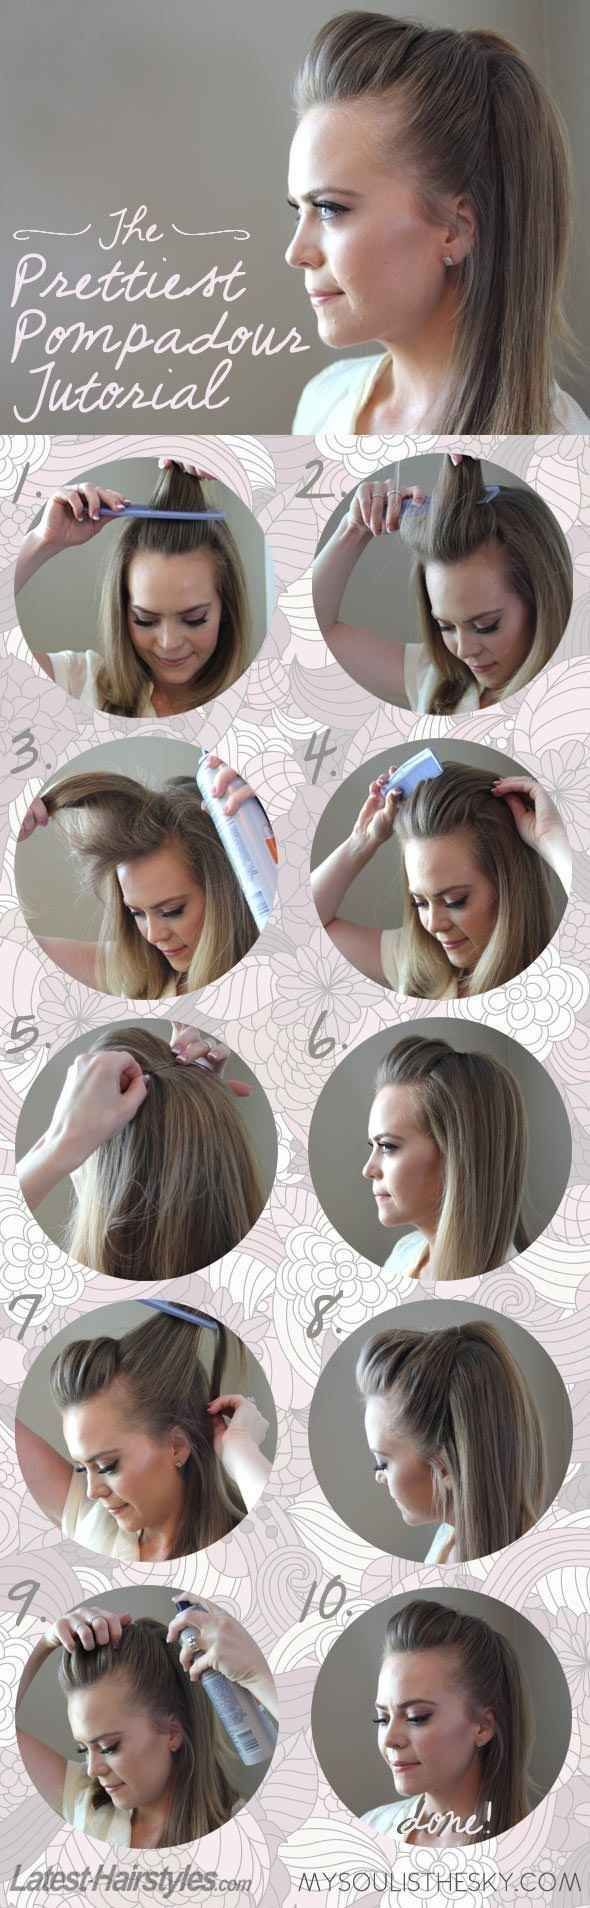 The Easiest, Prettiest Pompadour - just did this and it was easy and looks pretty with a few curls in the hair! Love it for a casual or dressed up night out!: